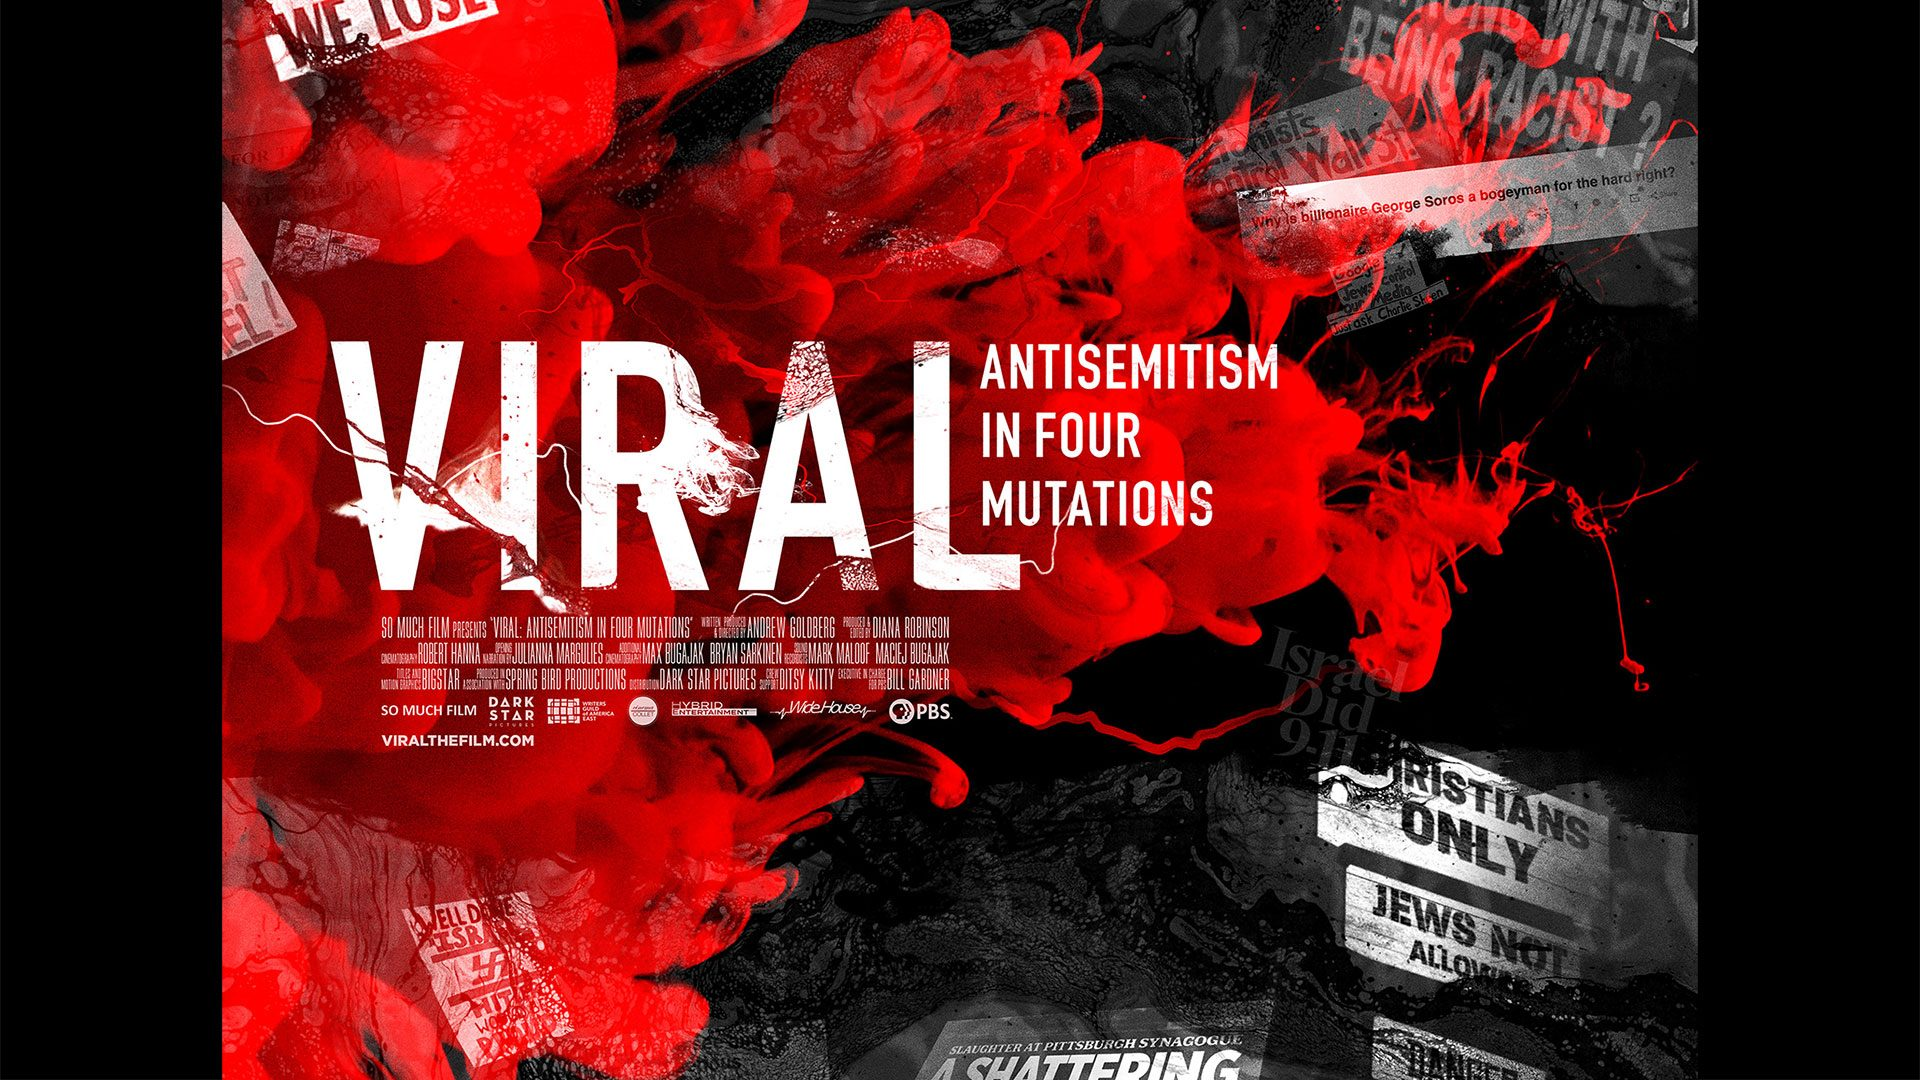 Viral: Antisemitism in Four Mutations title card